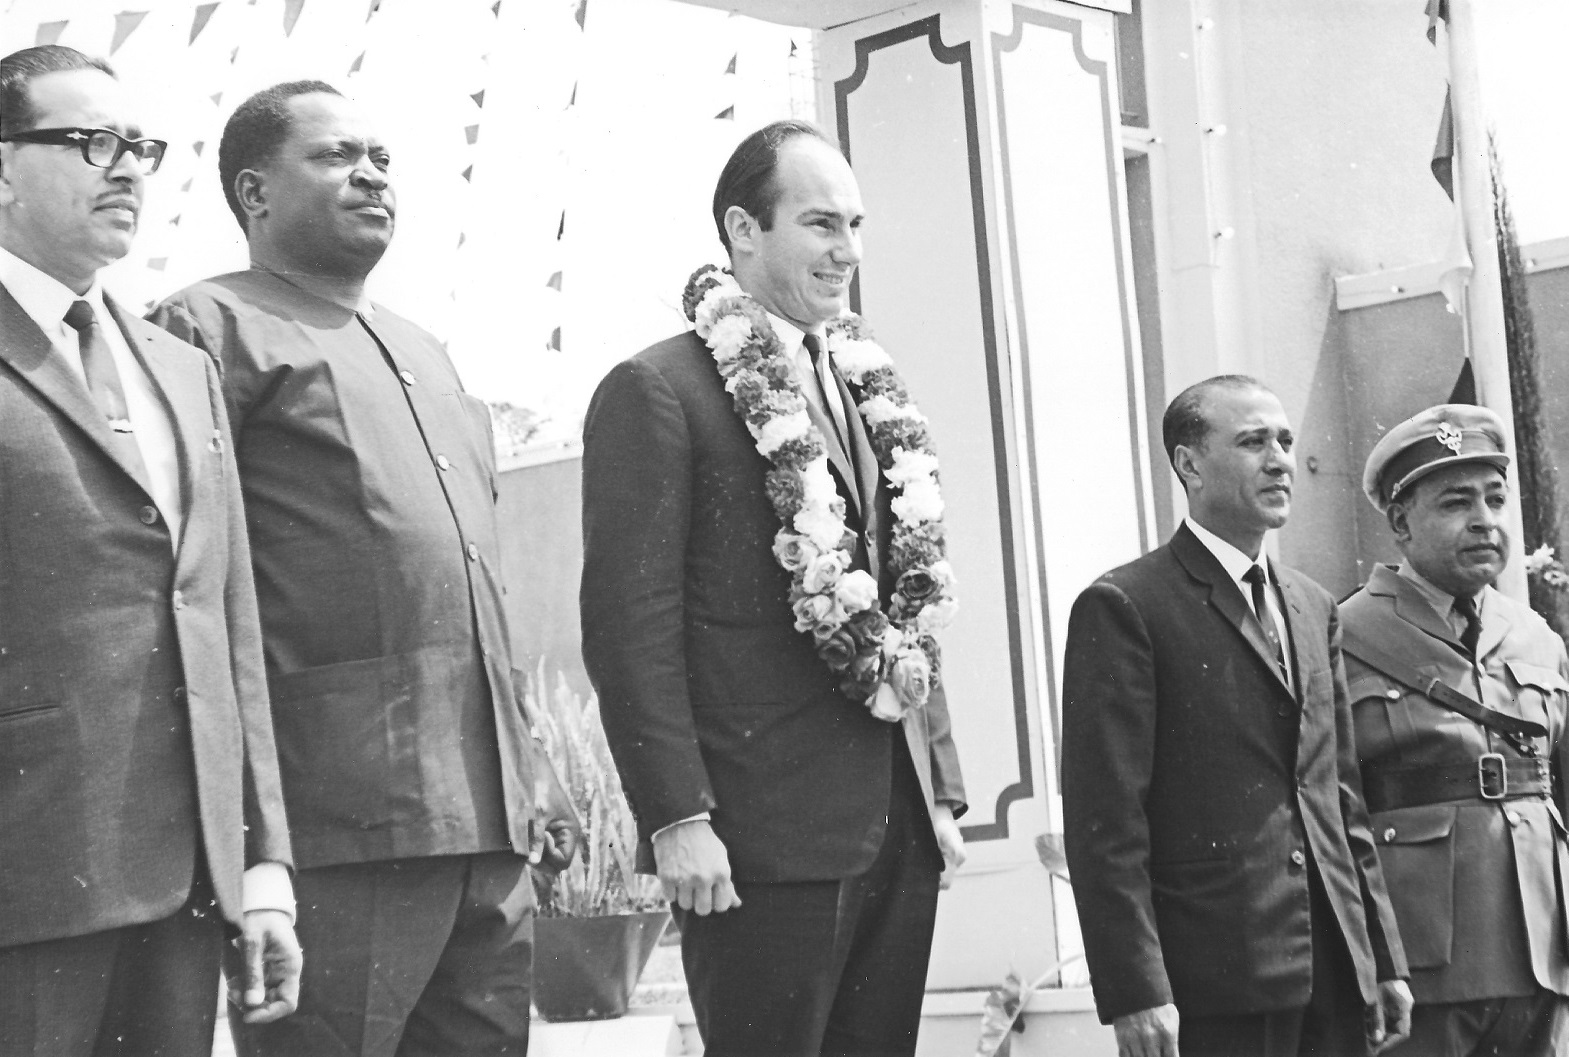 Amin Jaffer collection: Exclusive photos of Mawlana Hazar Imam's visit to Arusha, Tanzania, in 1966